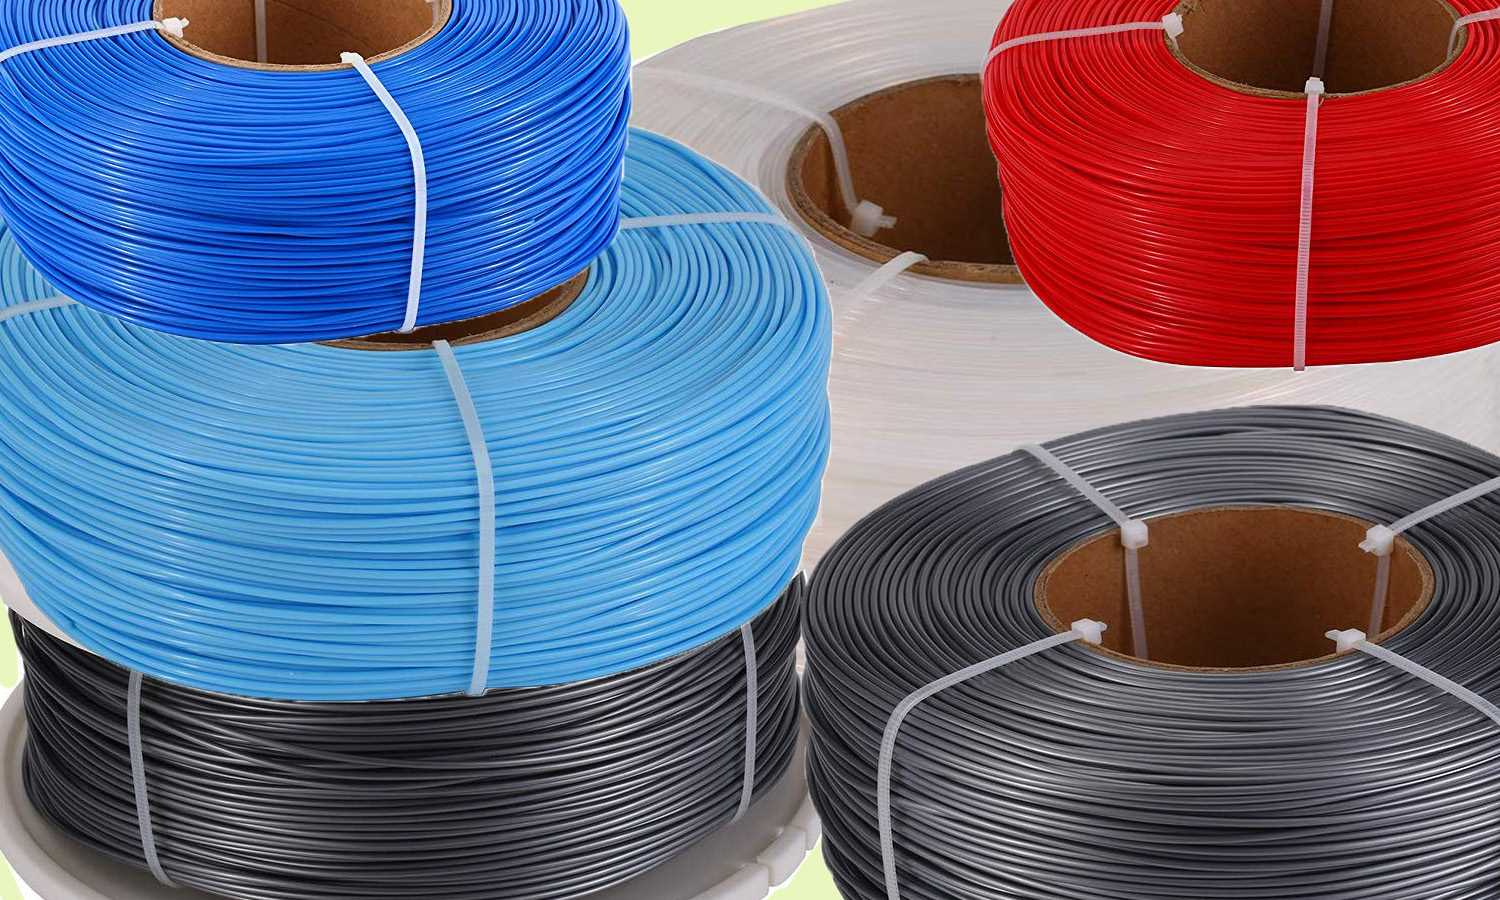 Filament Advice – 5 Things to Consider Before You Buy a Filament